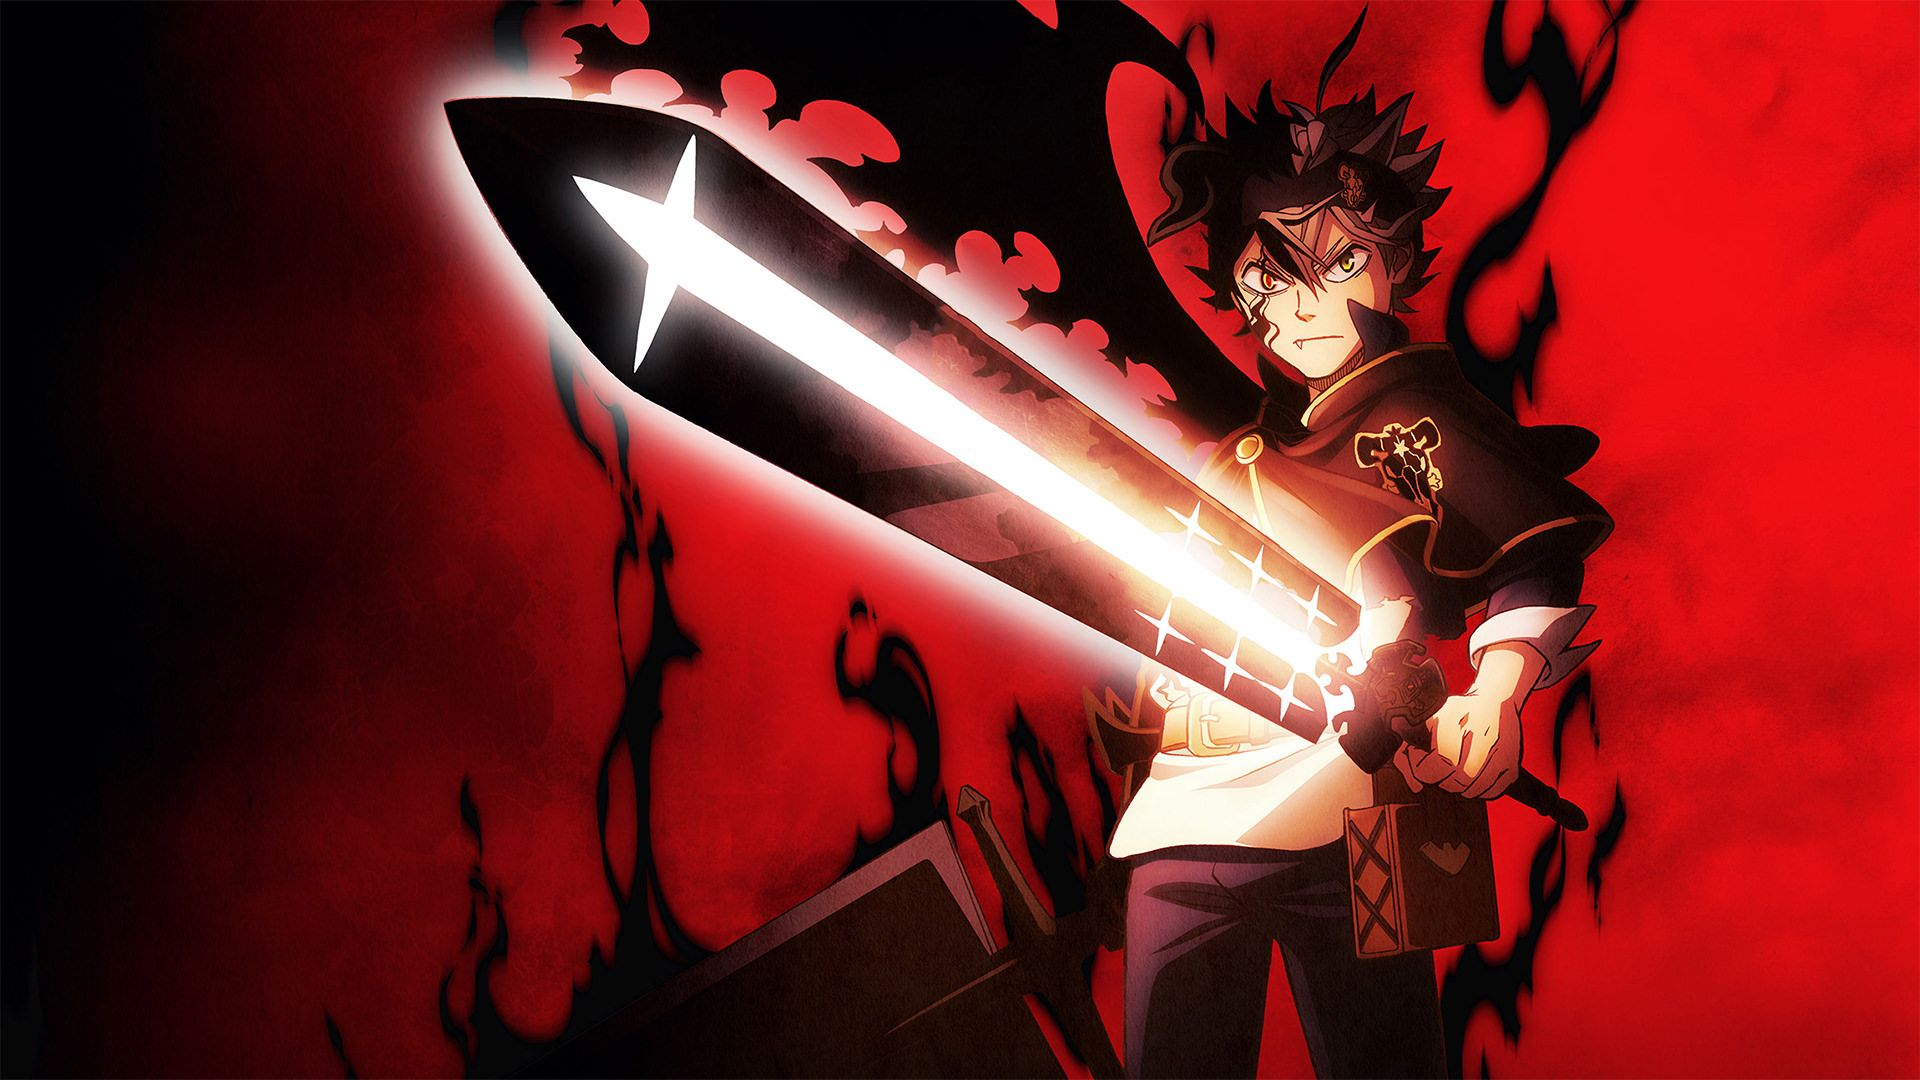 1366x768 black clover anime 4k 1366x768 resolution hd 4k wallpapers images backgrounds photos and pictures. Black Clover 4K Logo Wallpapers - Top Free Black Clover 4K ...